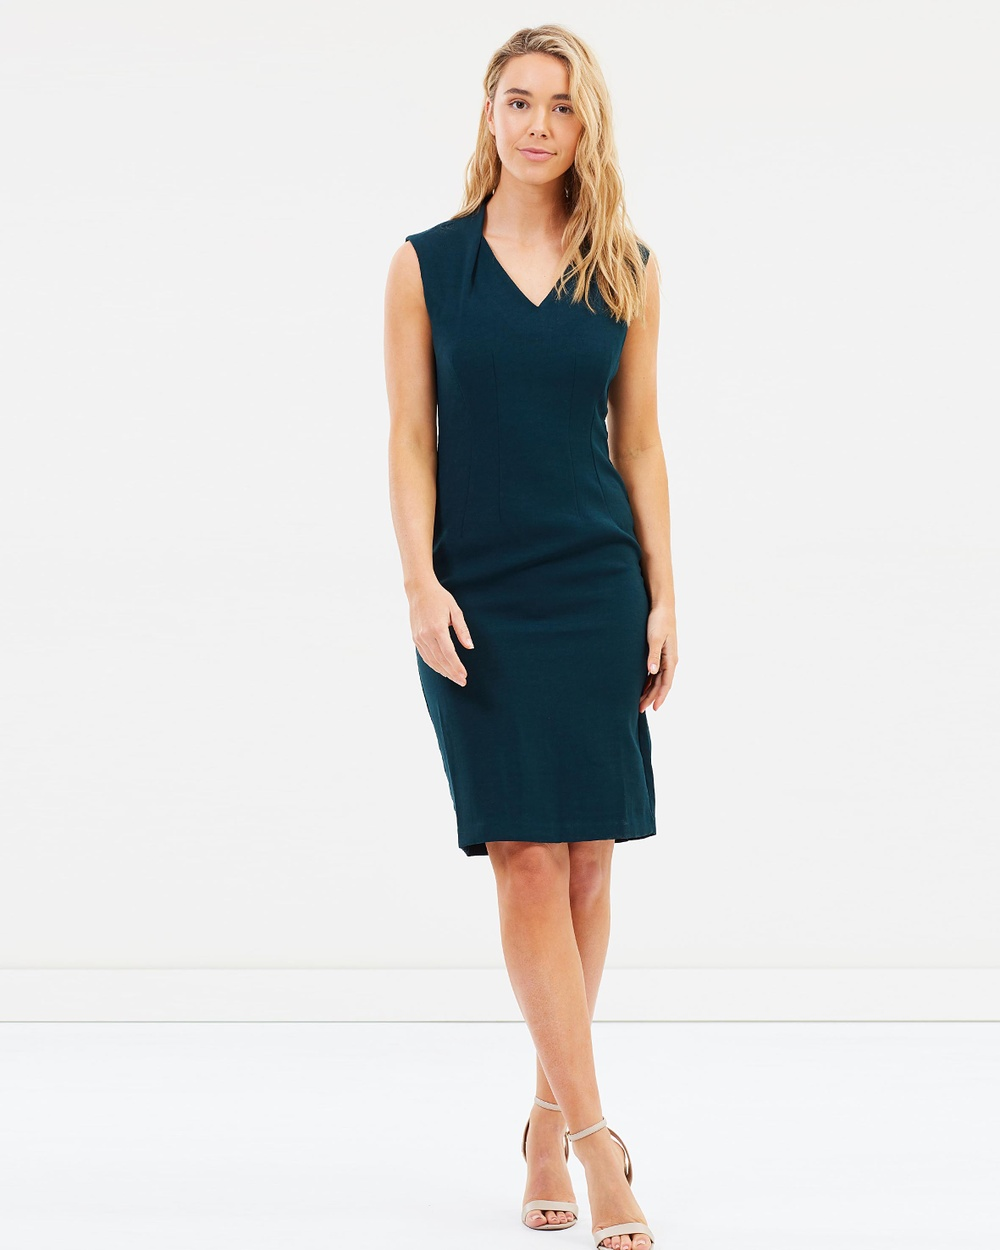 Forcast Vienna Sleeveless Dress Dresses Emerald Vienna Sleeveless Dress